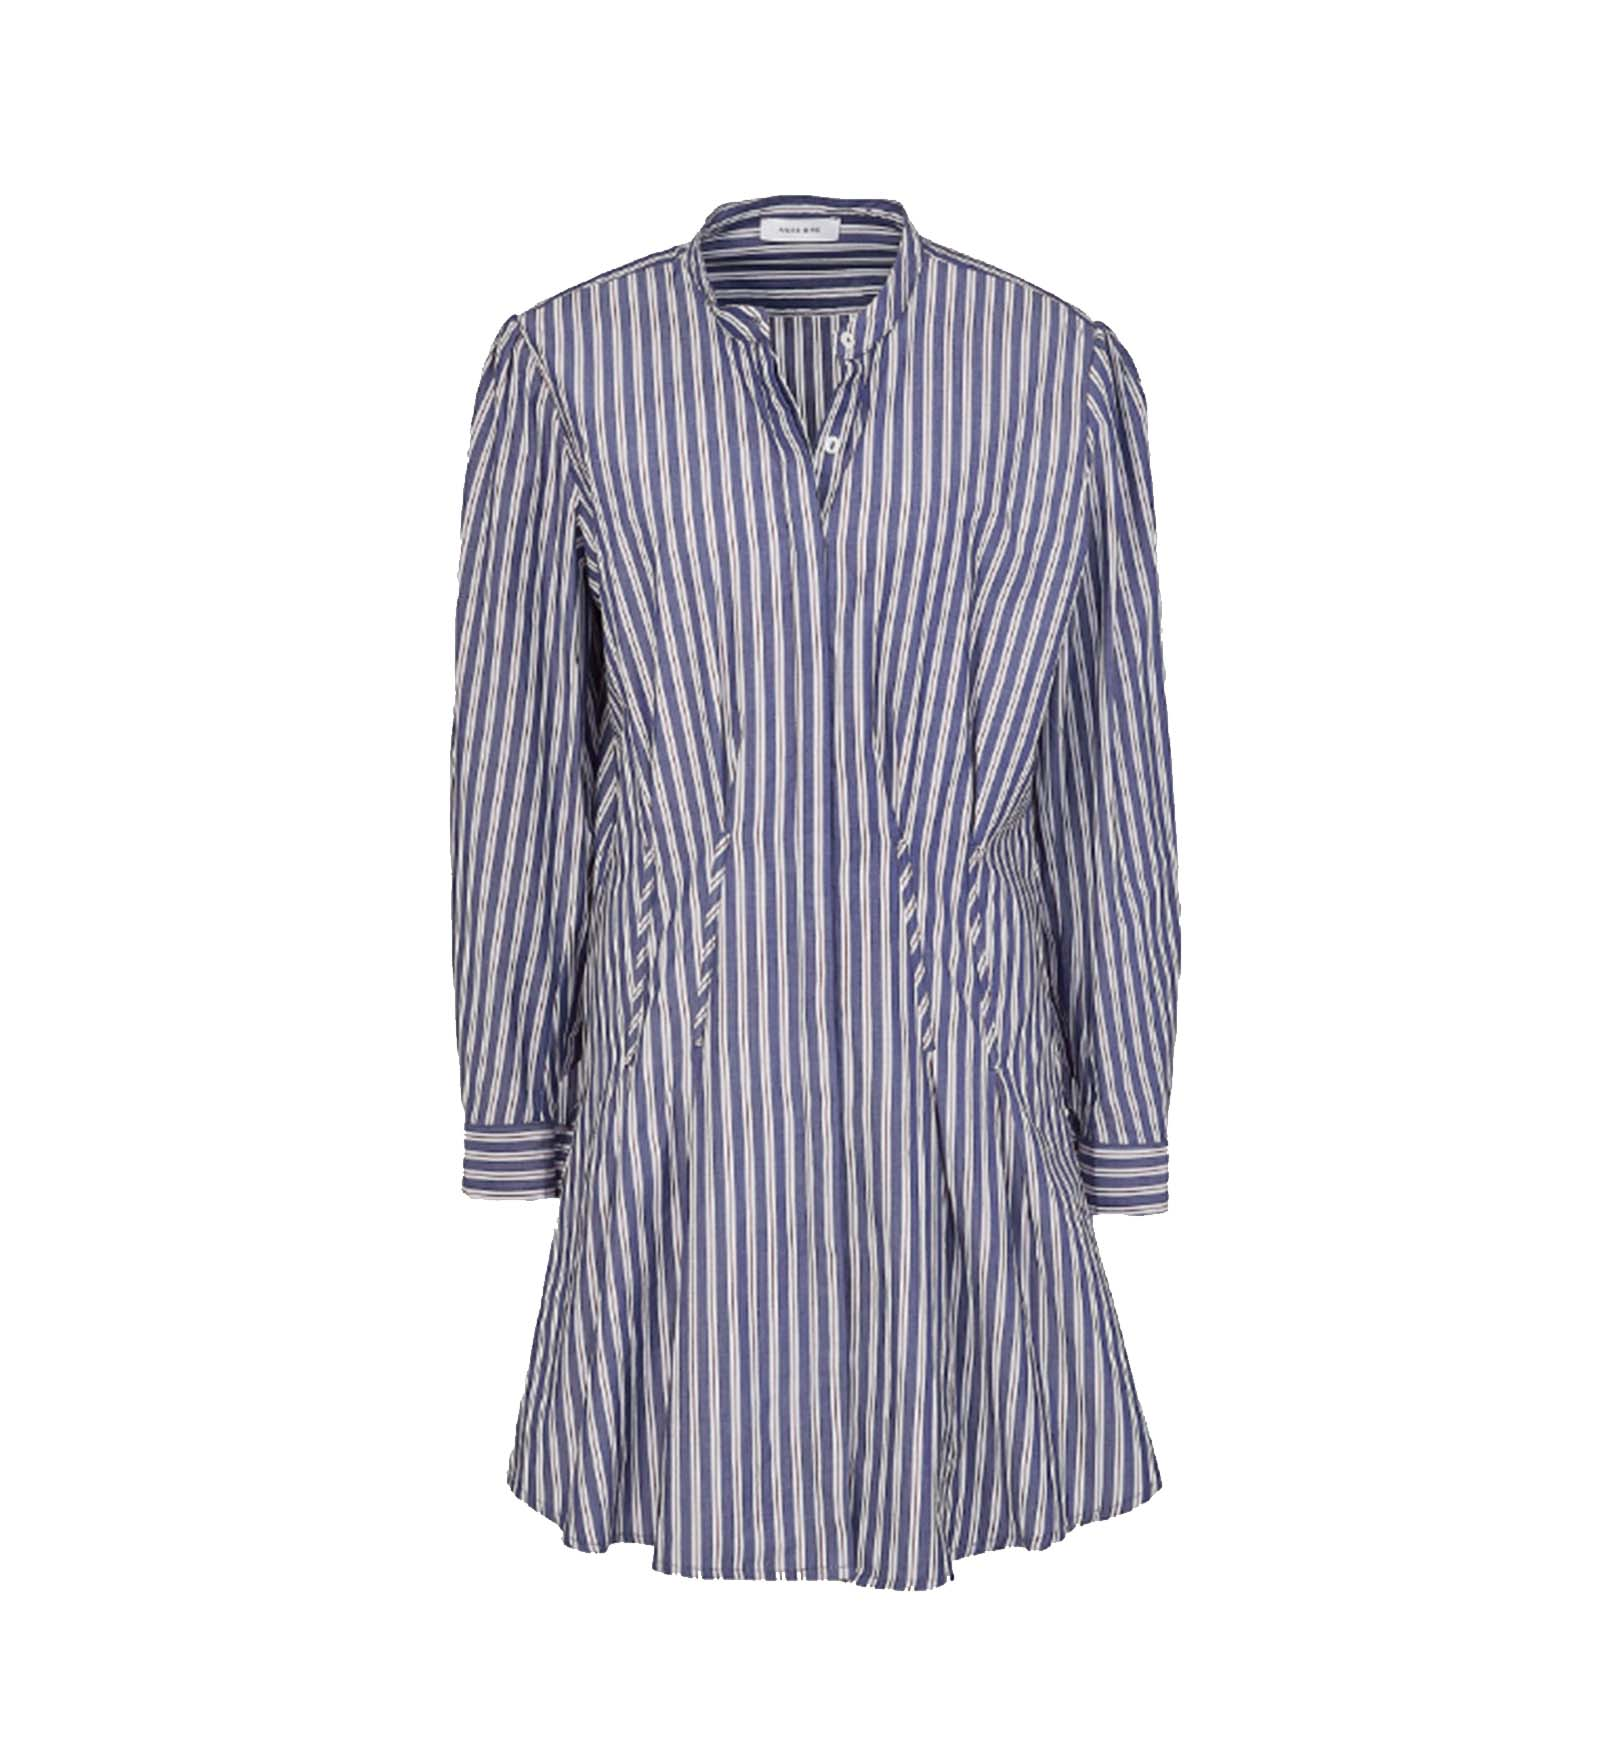 Trend_Shirtdress_NewsCred_1160x1740_05.jpg